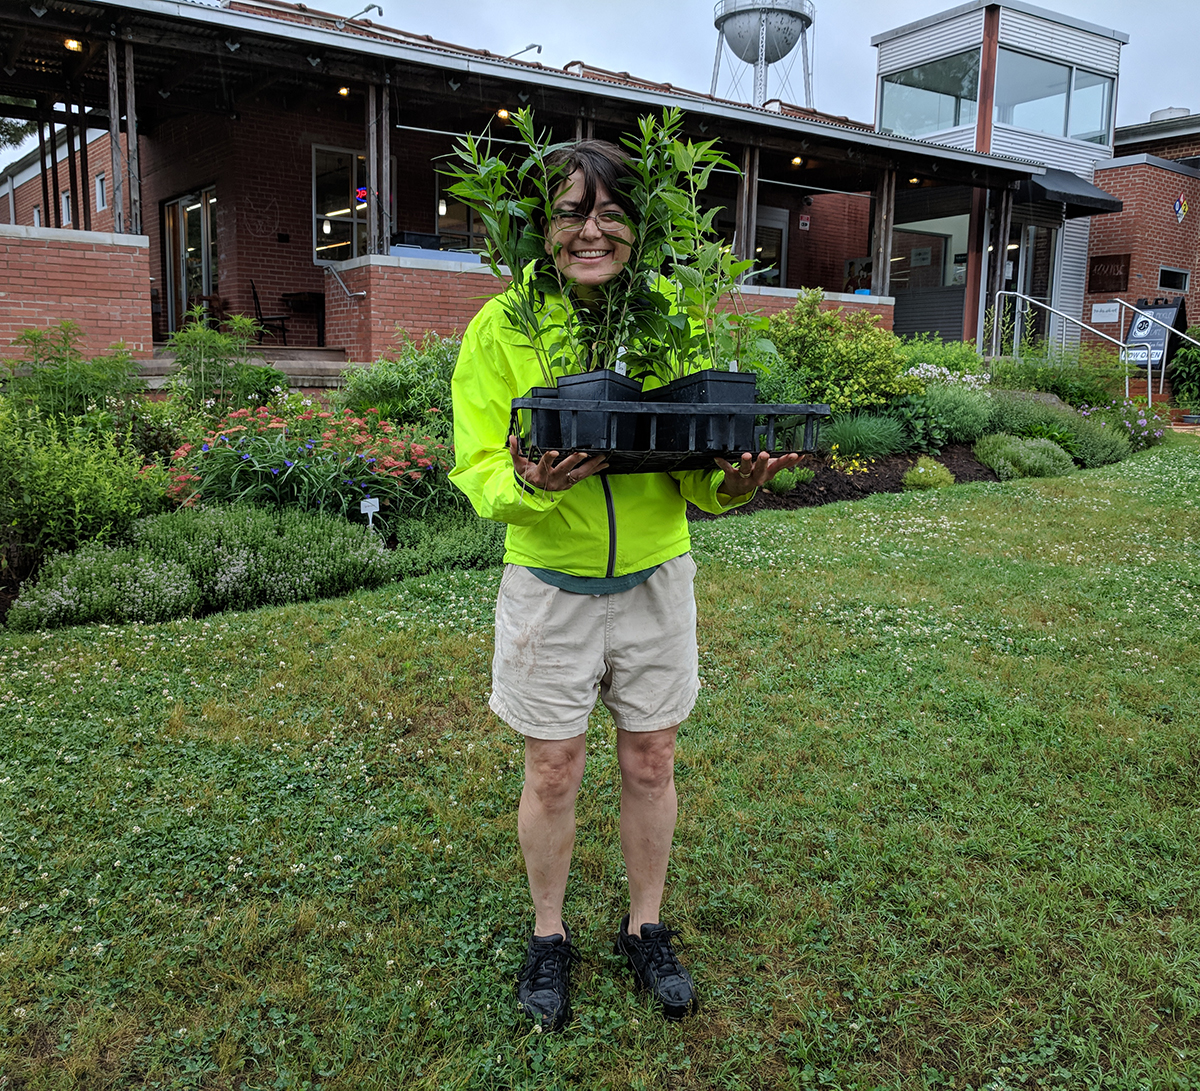 This lucky visitor won six pollinator plants donated by Niche Gardens!